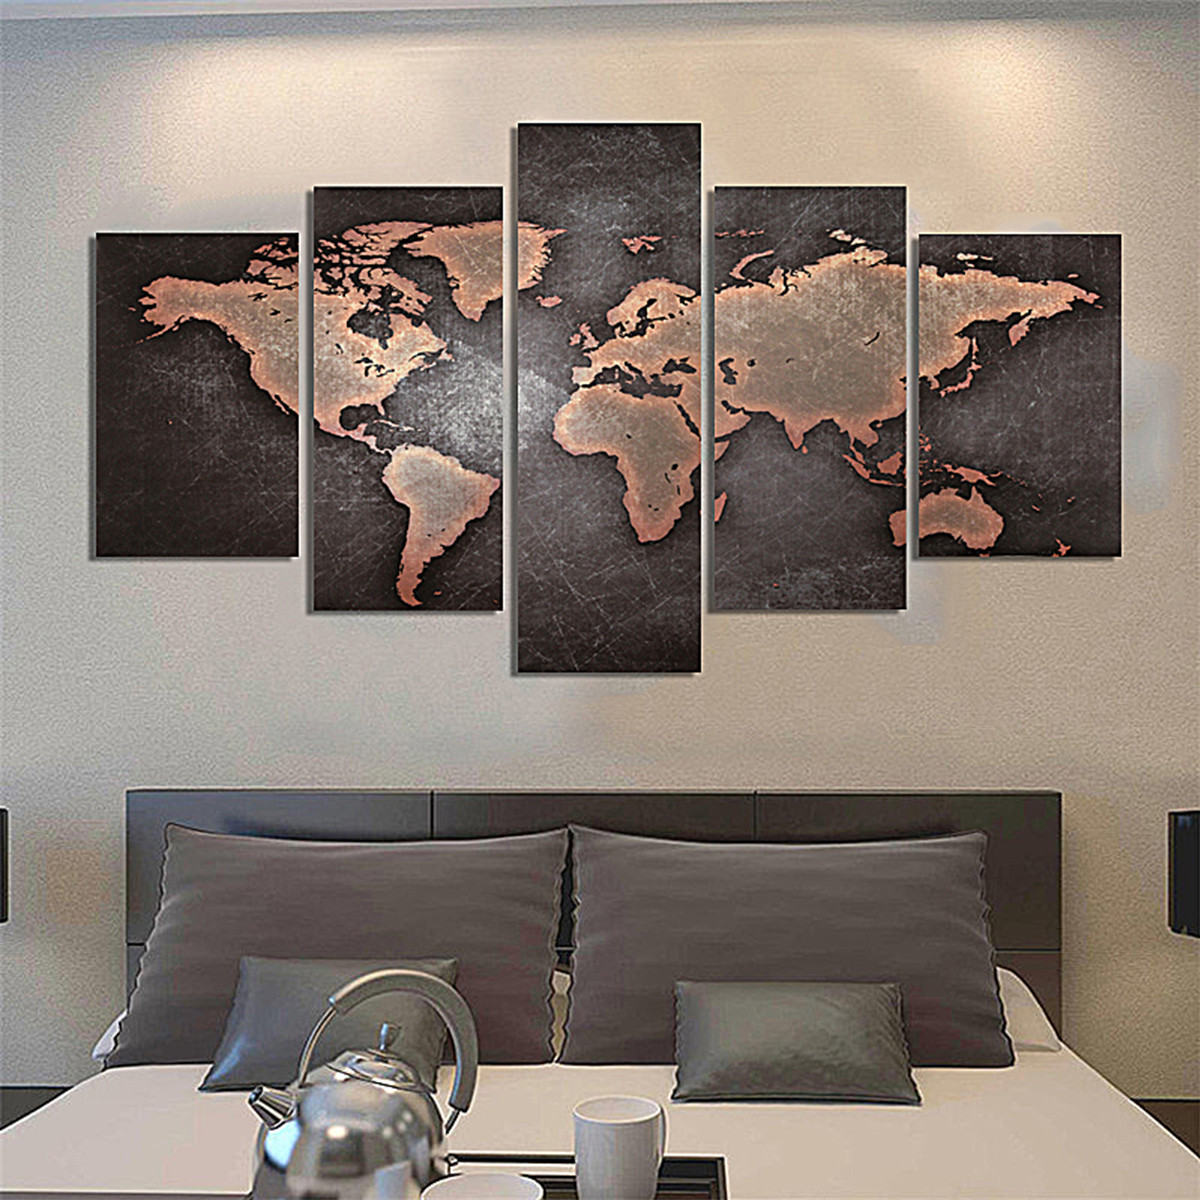 5pcs tableau peinture l 39 huile toile carte monde art. Black Bedroom Furniture Sets. Home Design Ideas